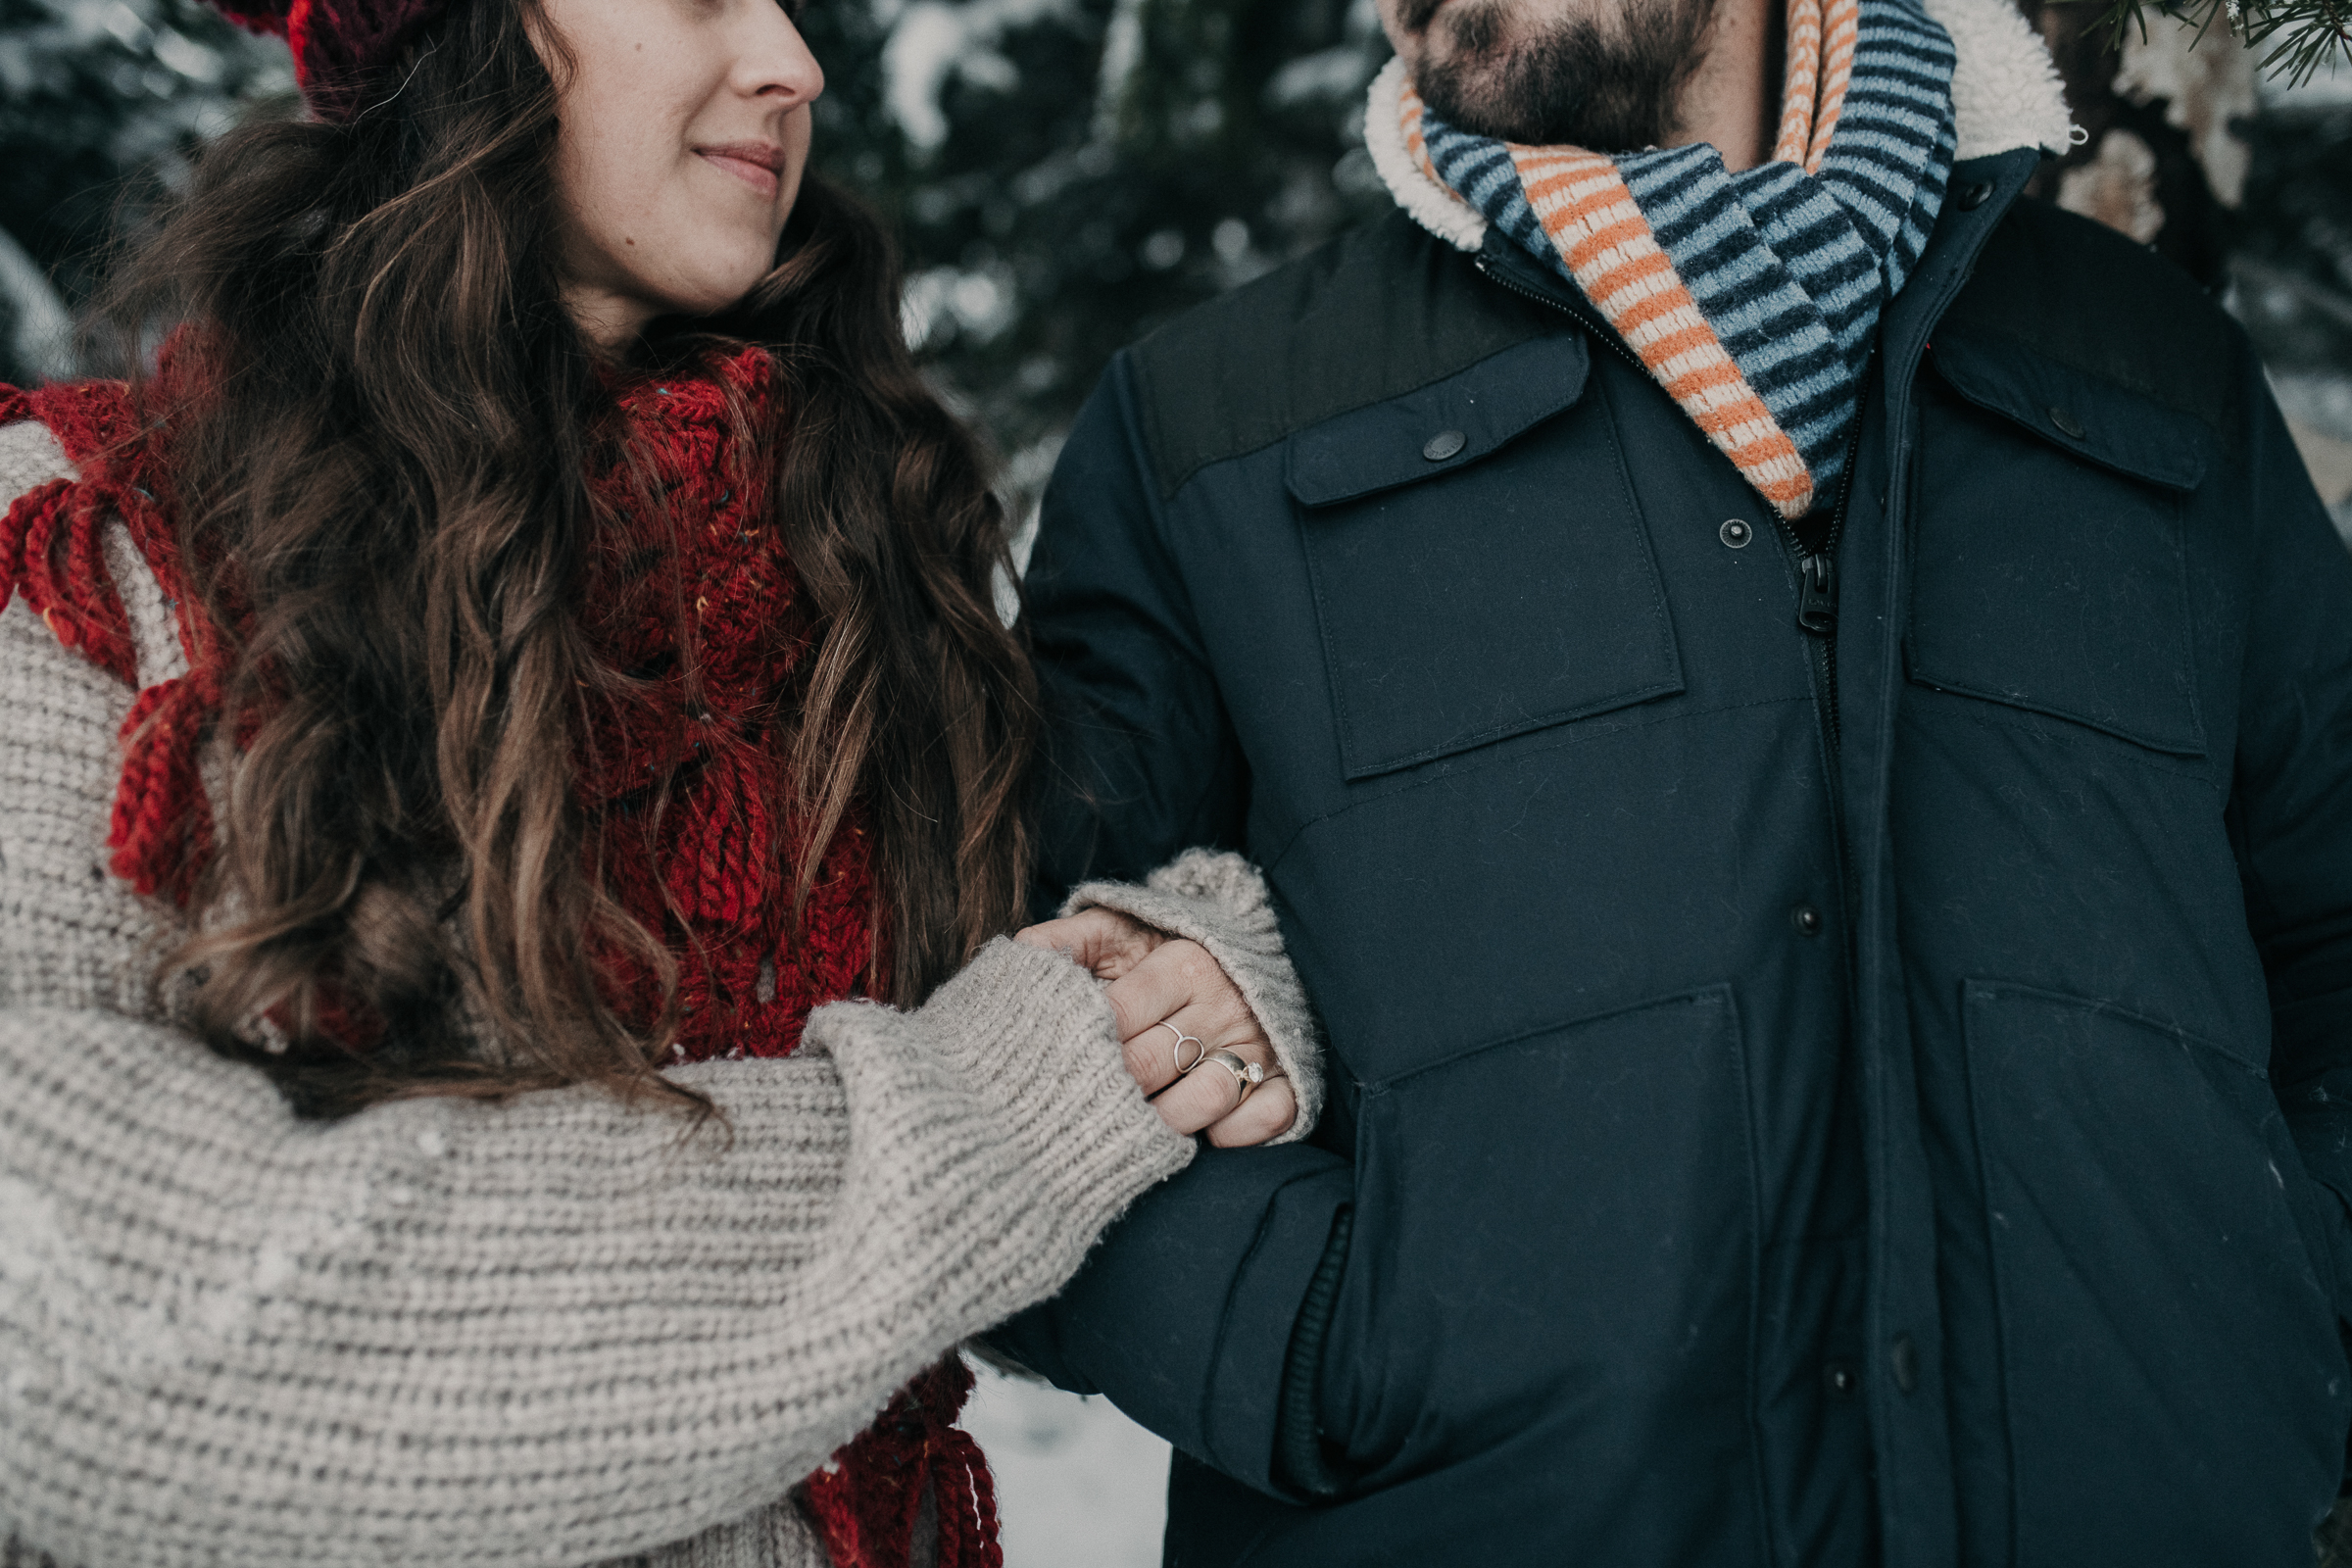 Couple standing together in snowy mountains